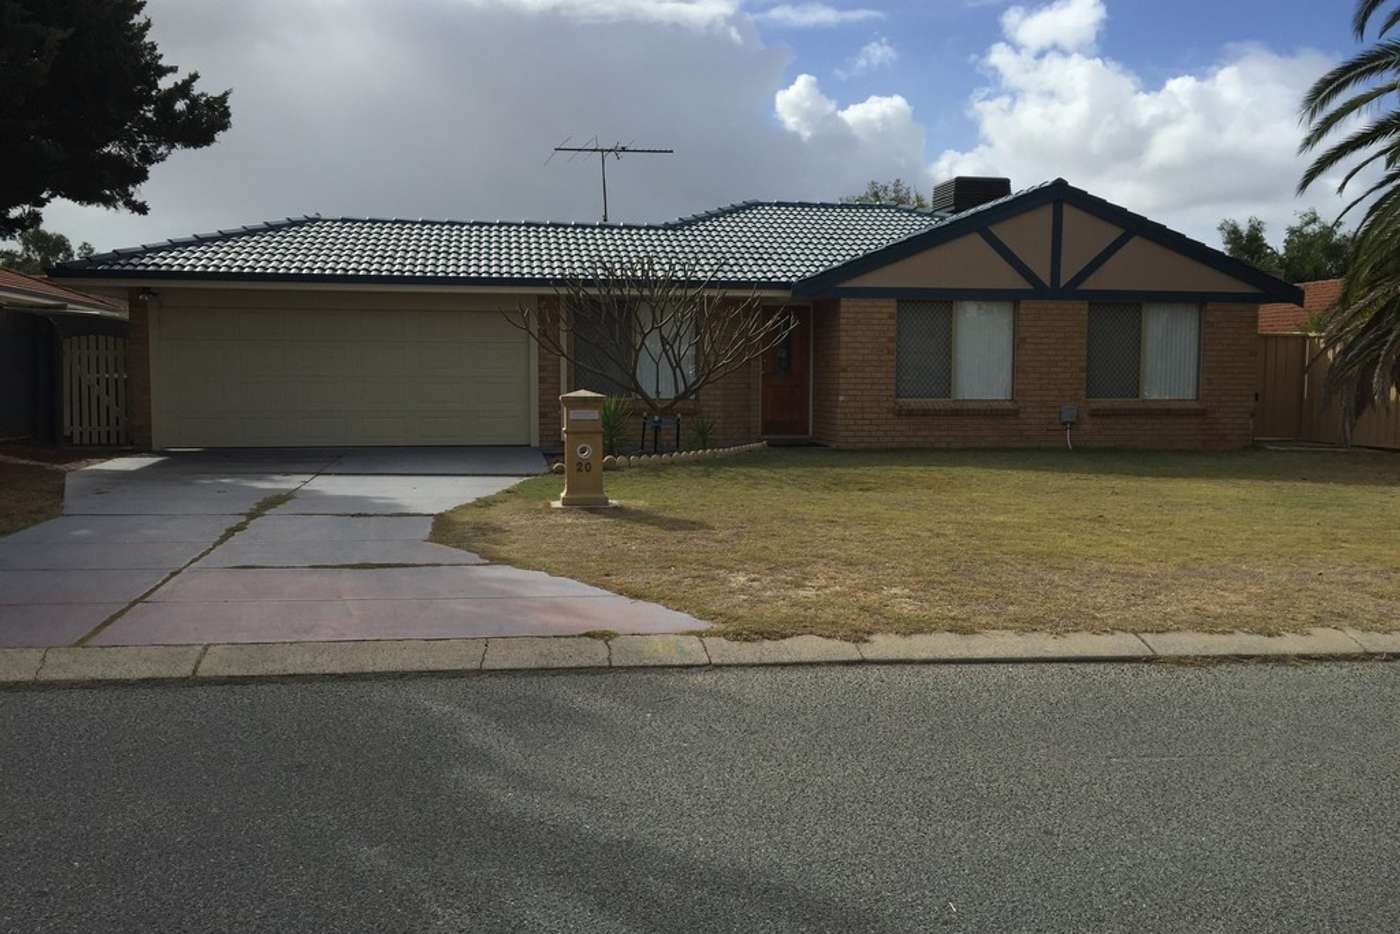 Main view of Homely house listing, 20 Kutcharo Crescent, Joondalup WA 6027